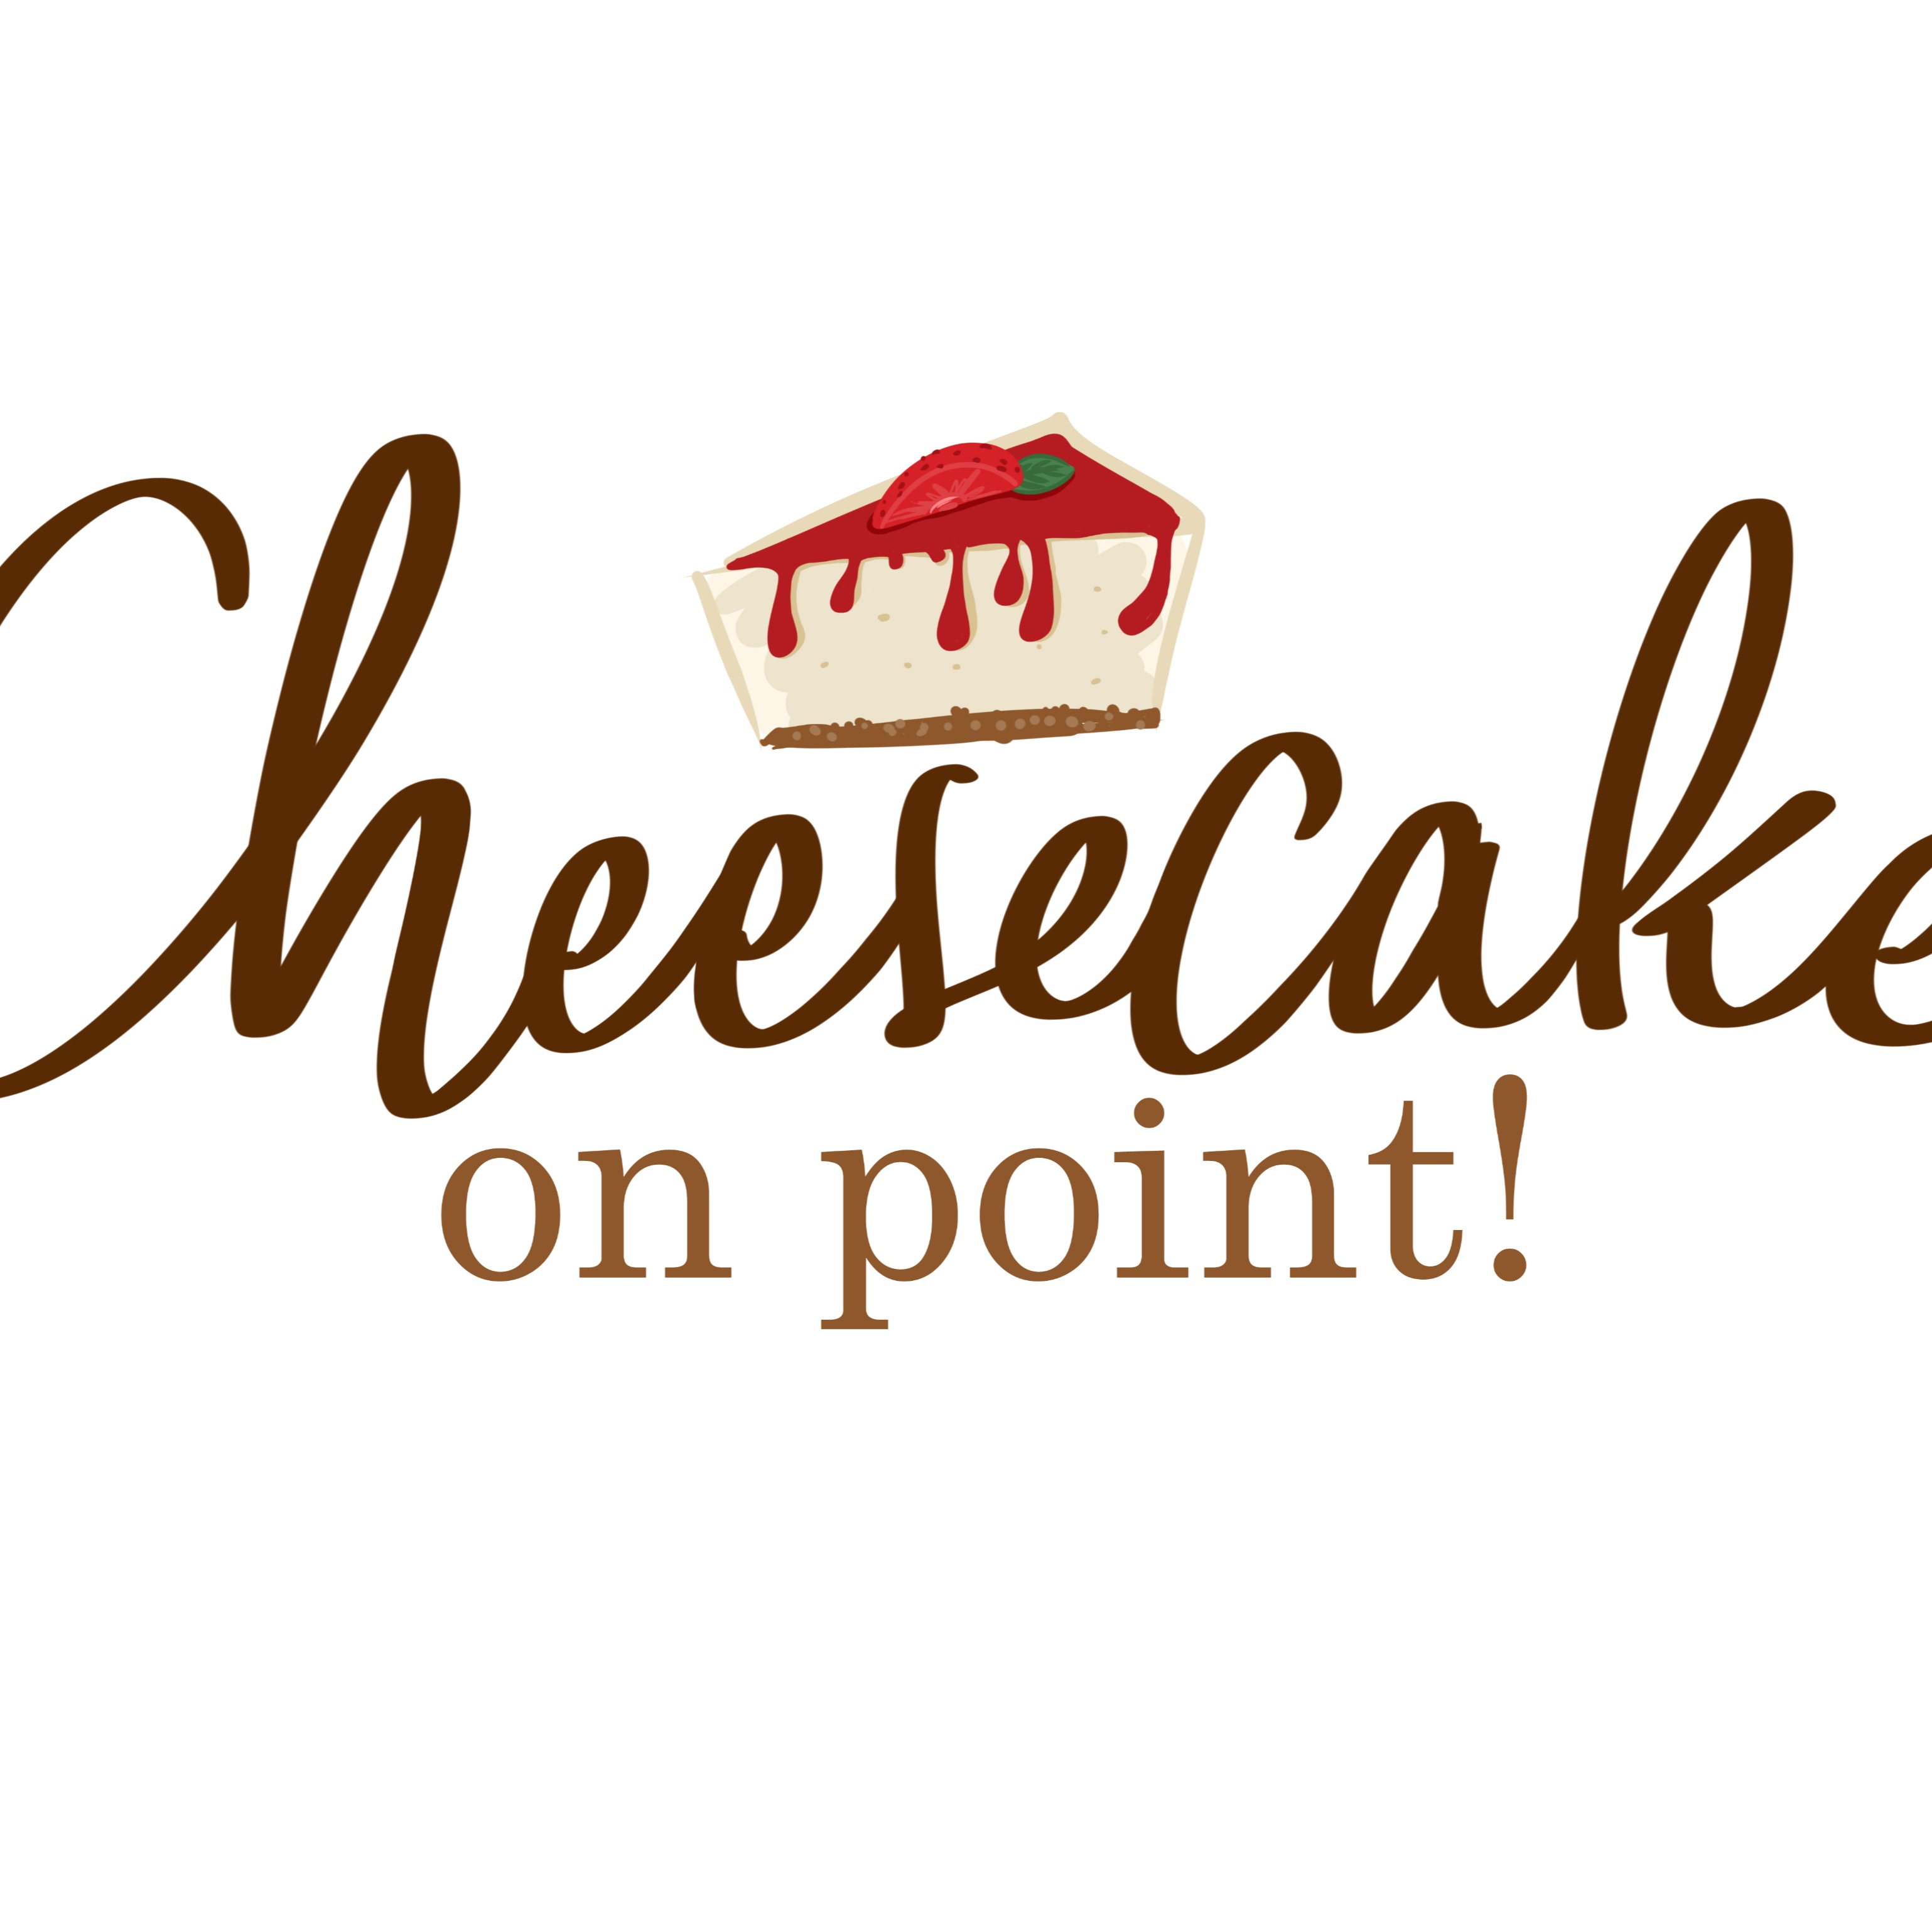 Cheesecake on Point! food truck profile image